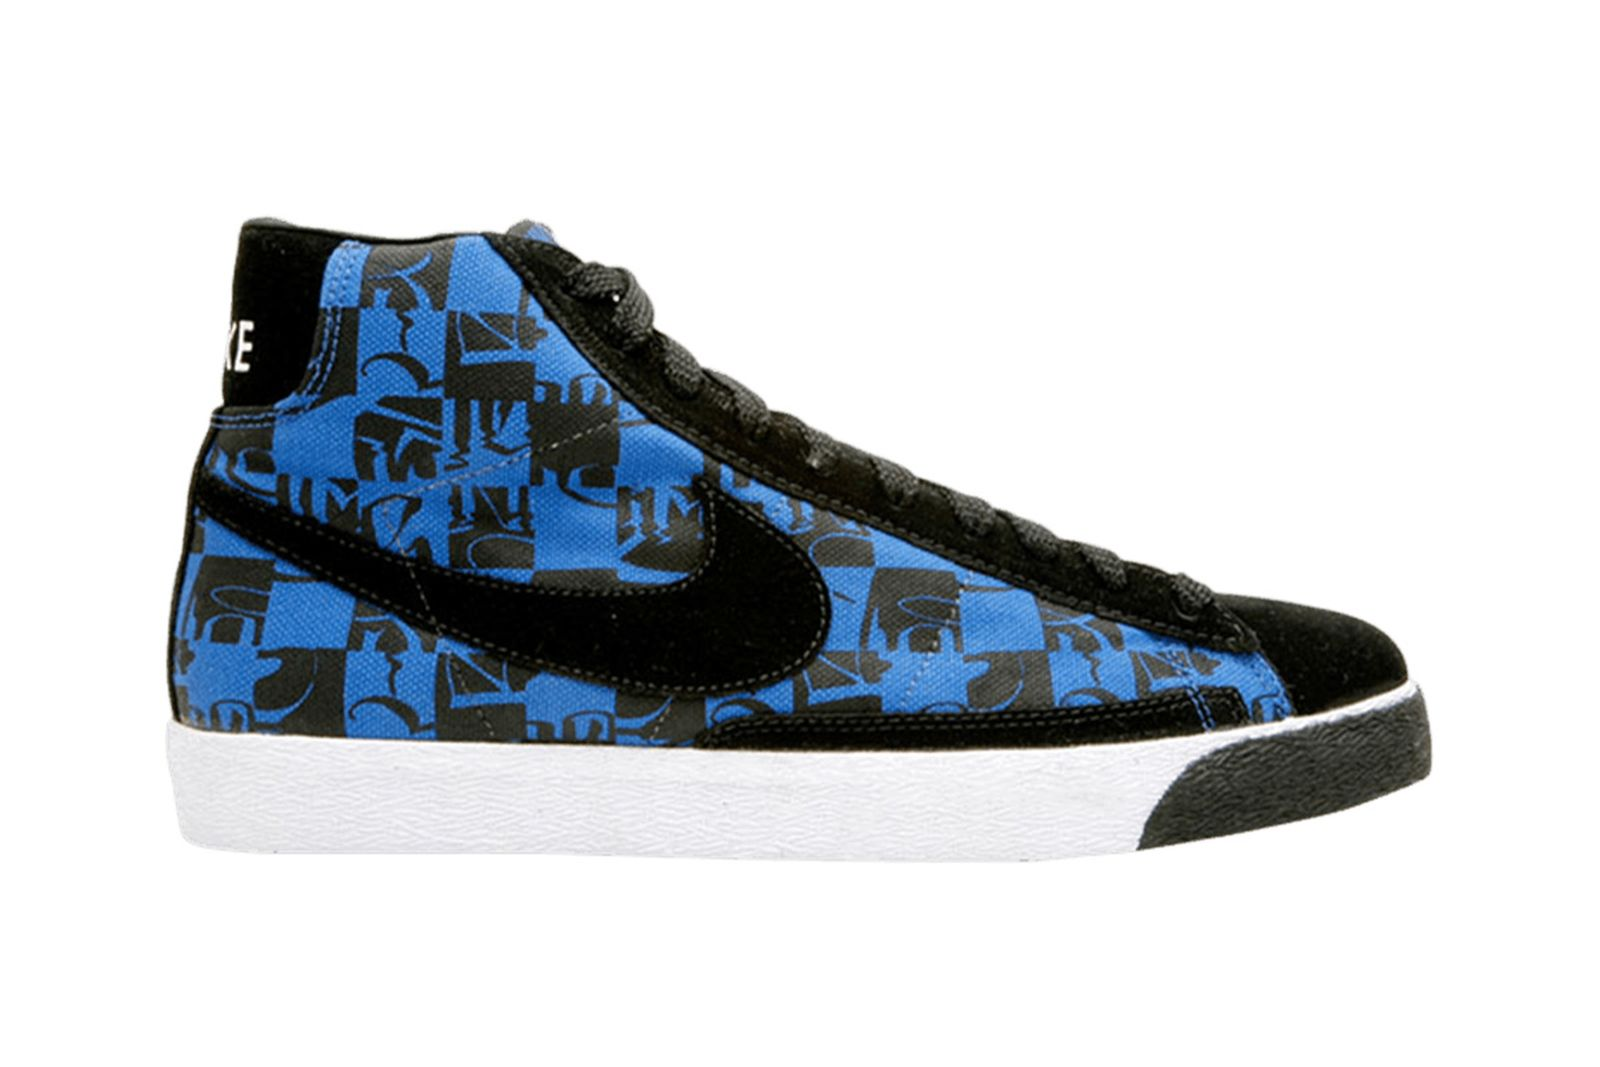 stussy-nike-sneaker-collaboration-roundup-08